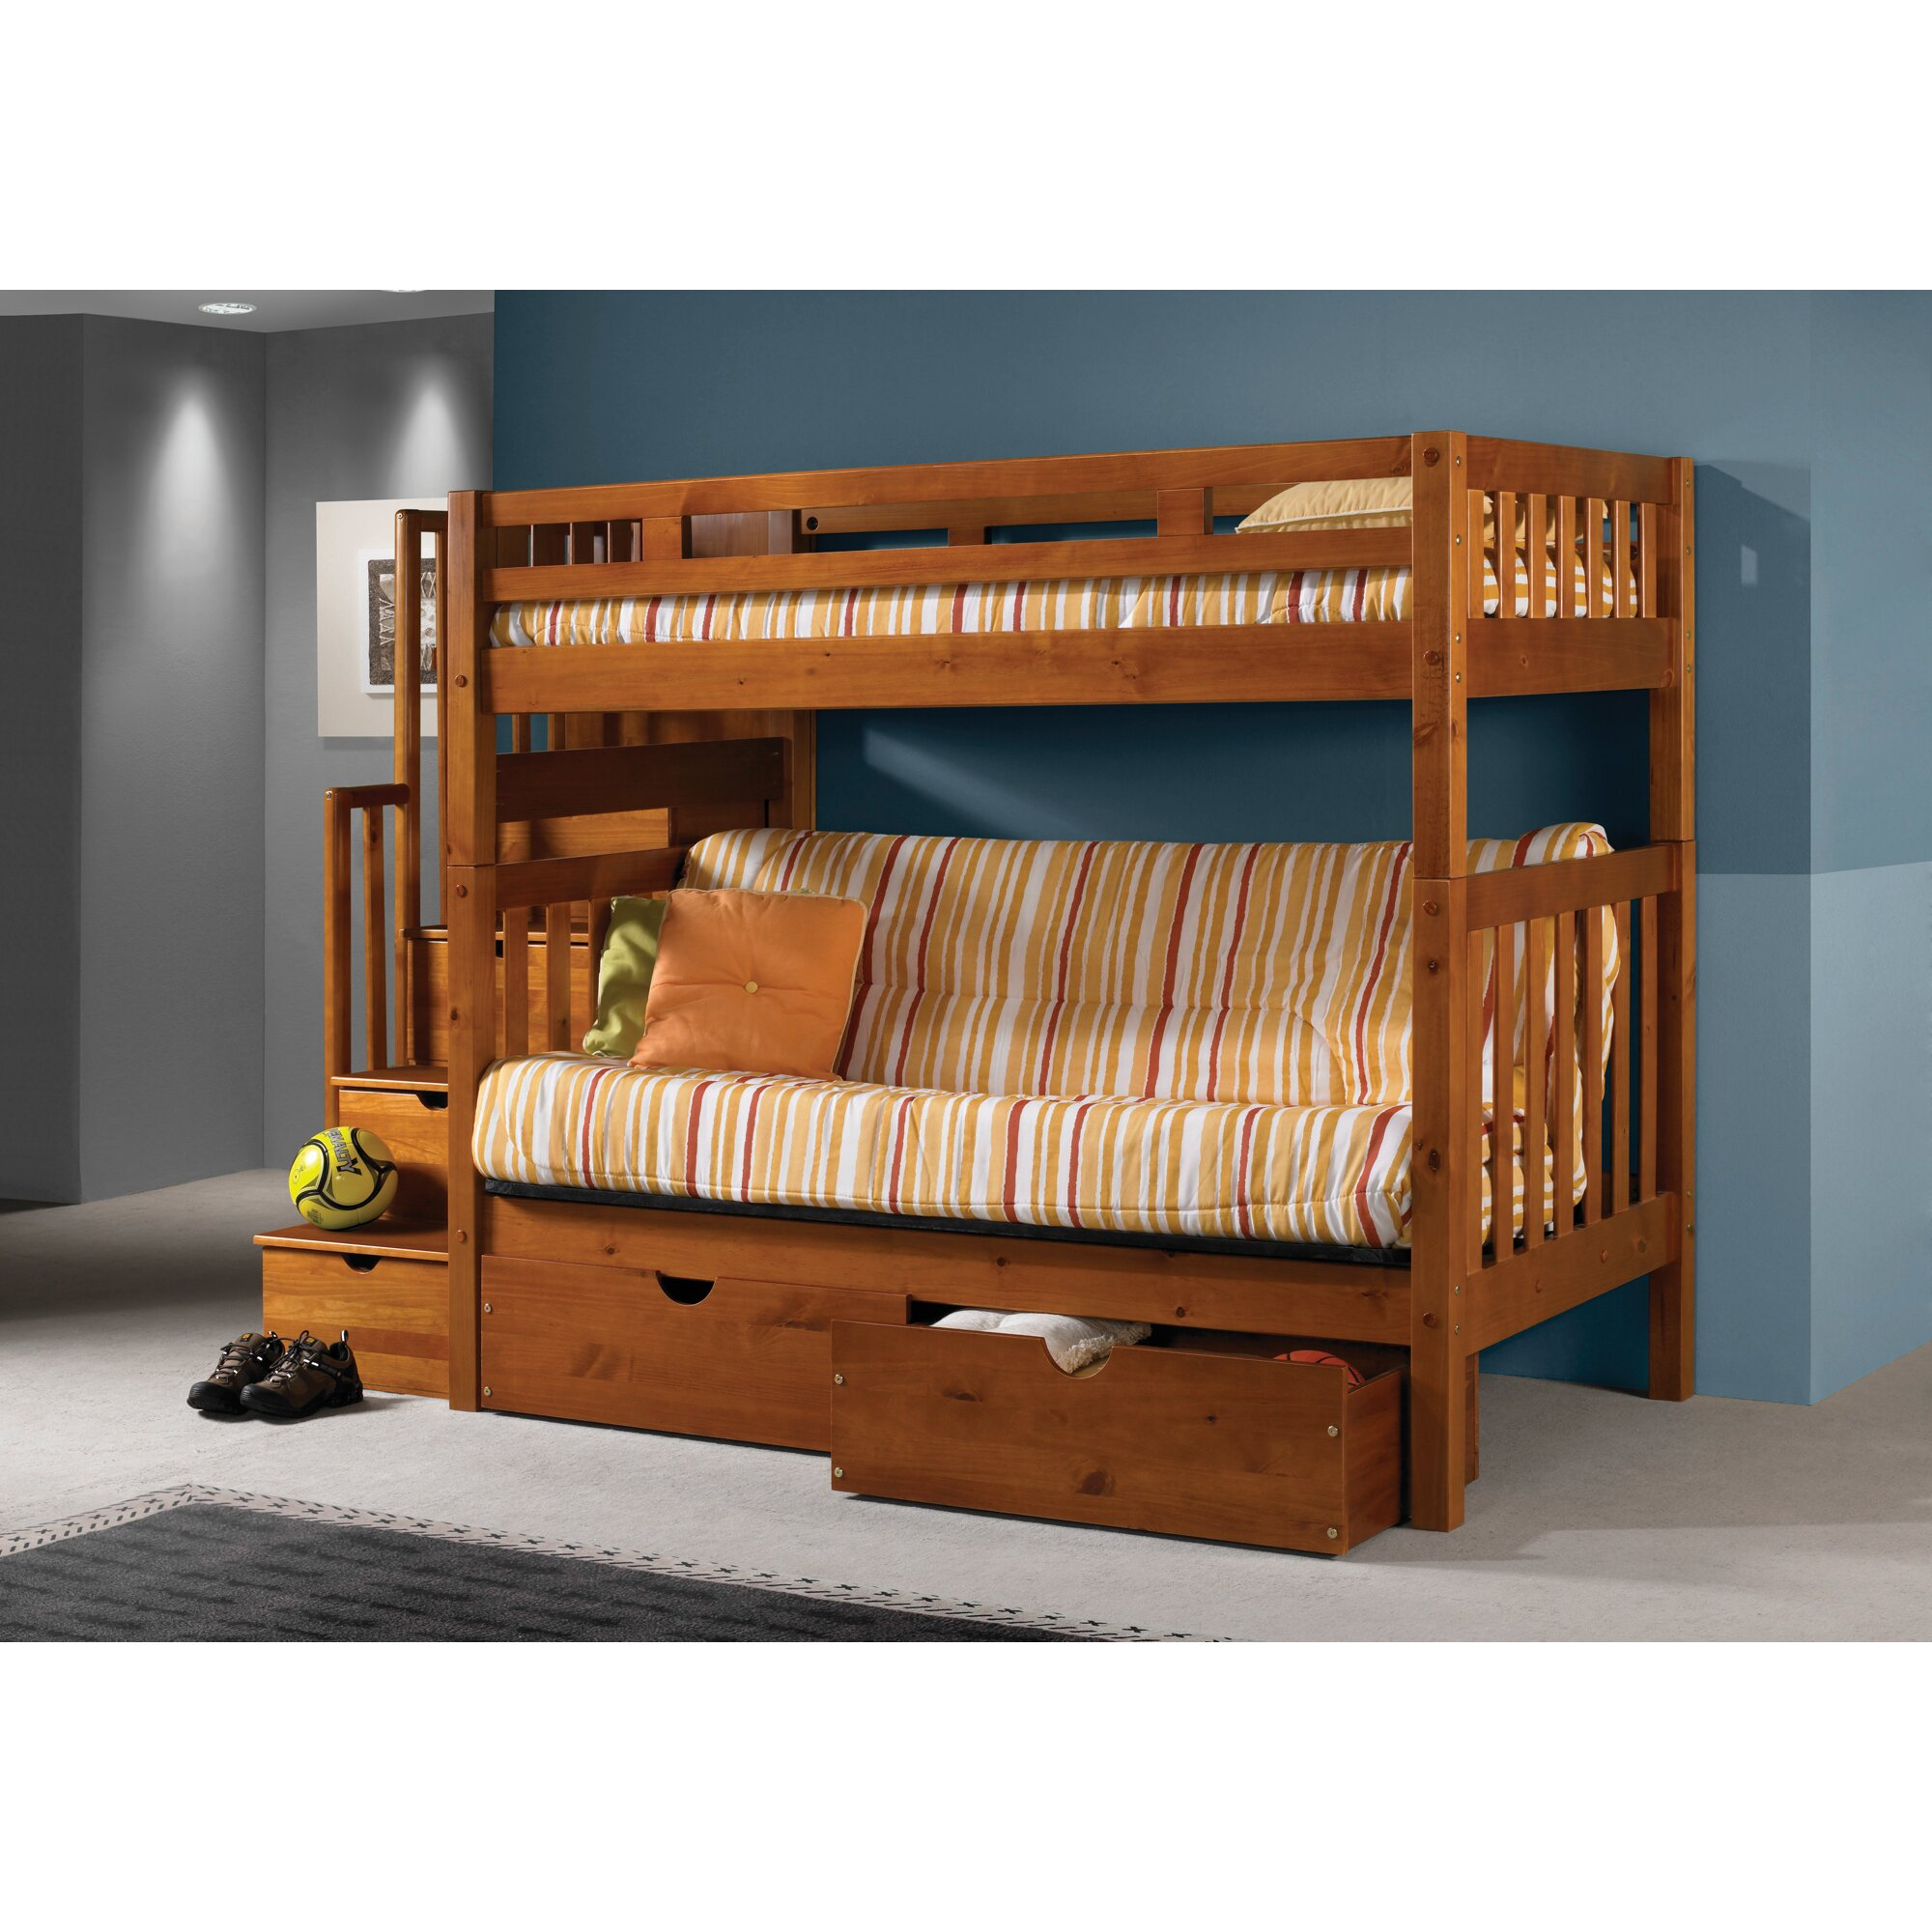 Donco kids stairway loft bunk bed with storage drawers for 1 loft